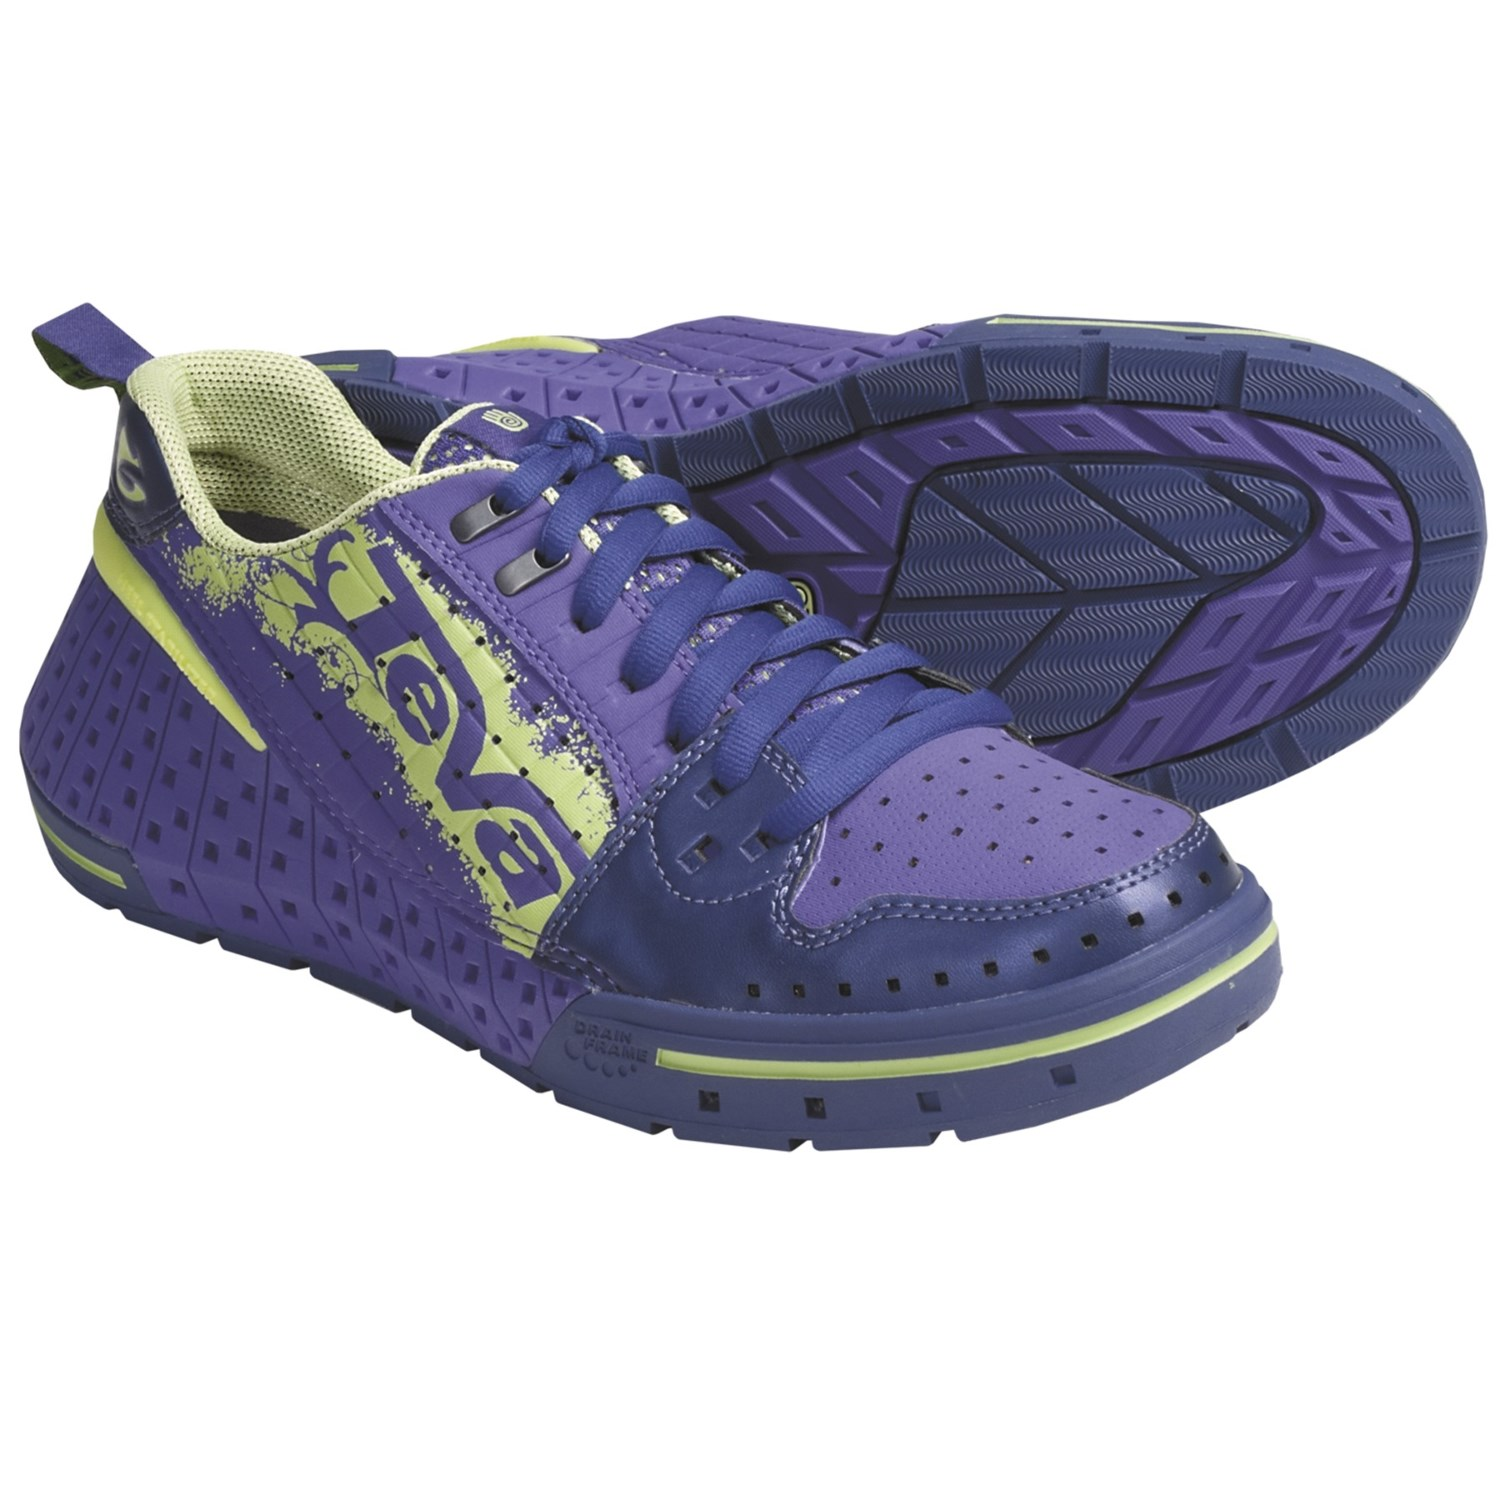 Teva Gnarkosi Water Shoes (For Women) in Ultra Violet